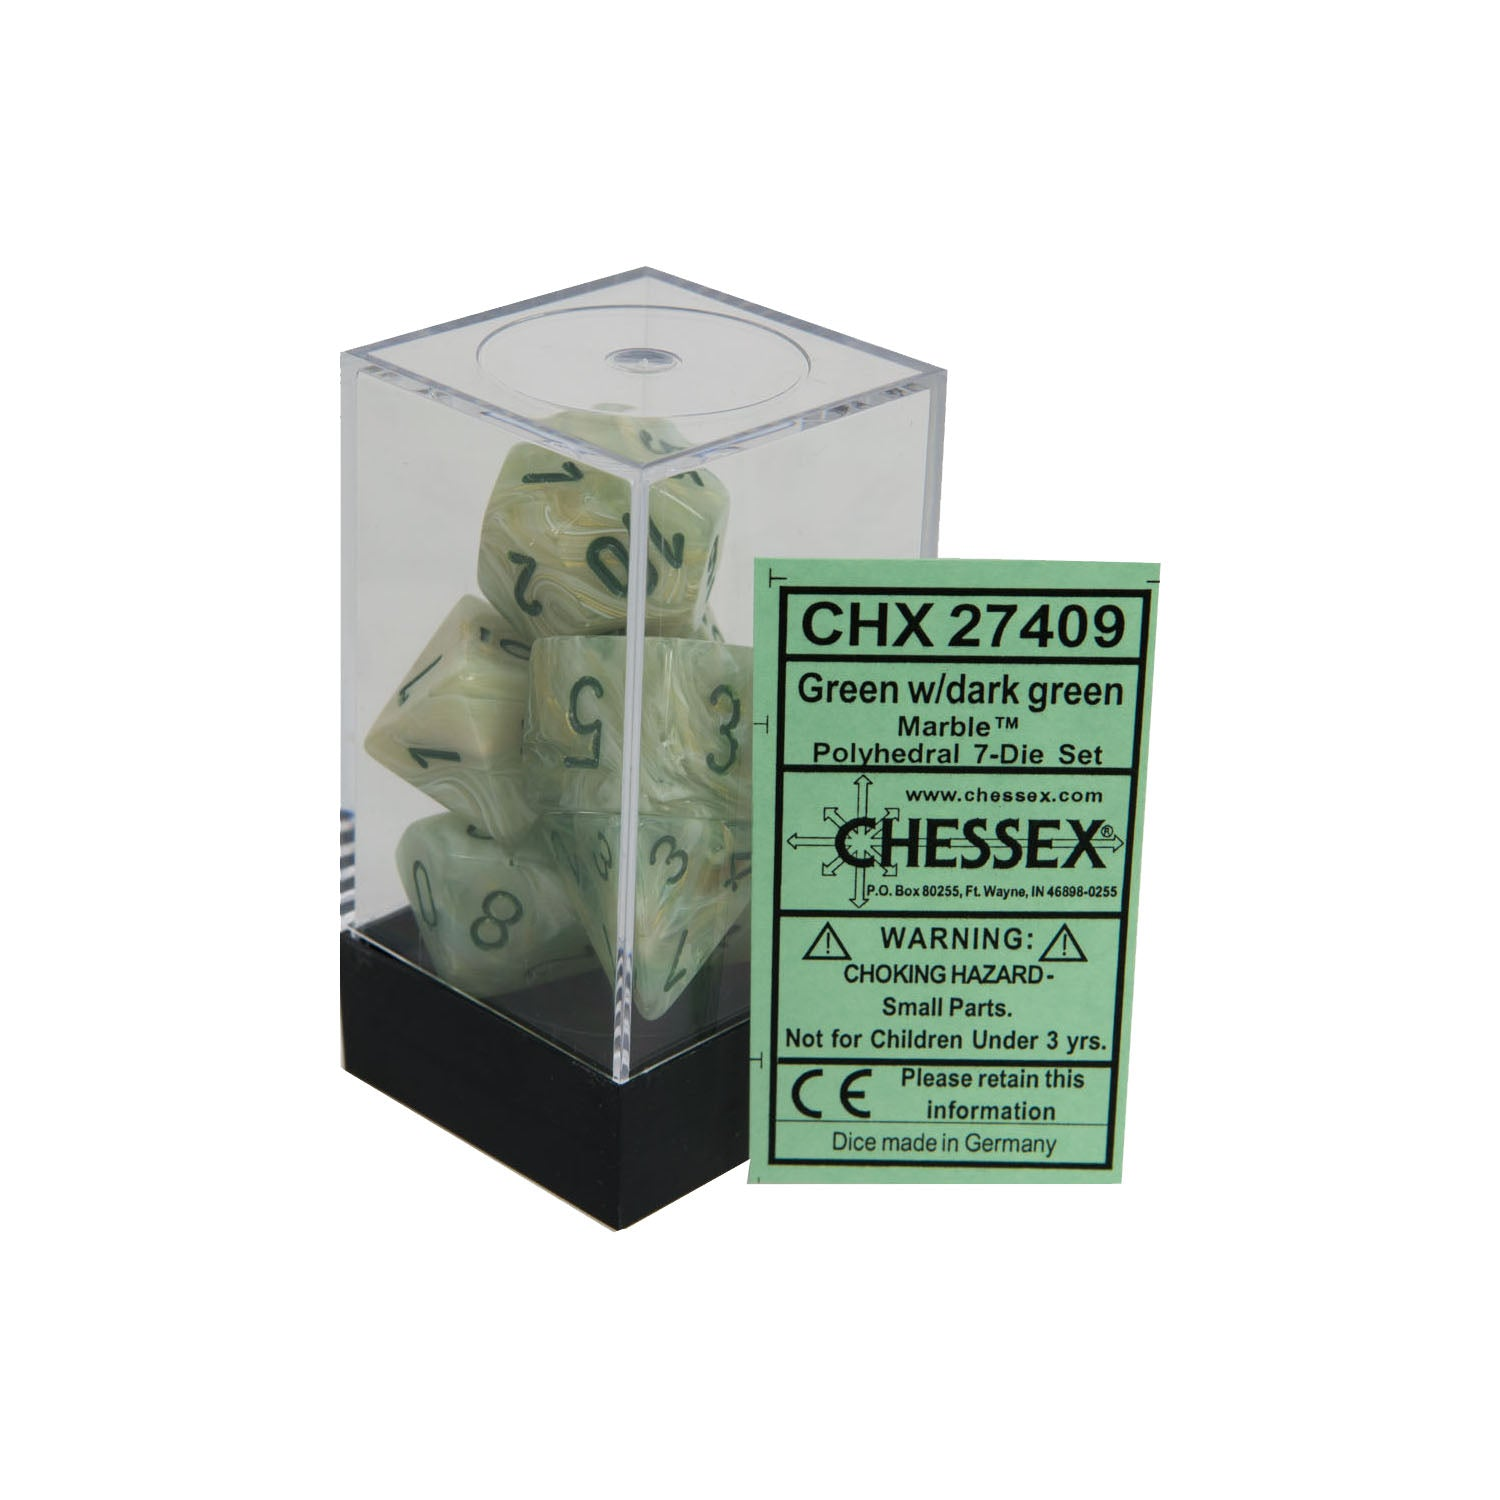 Chessex CHX27409 Green w/ dark green Marble™ Polyhedral Dice Set